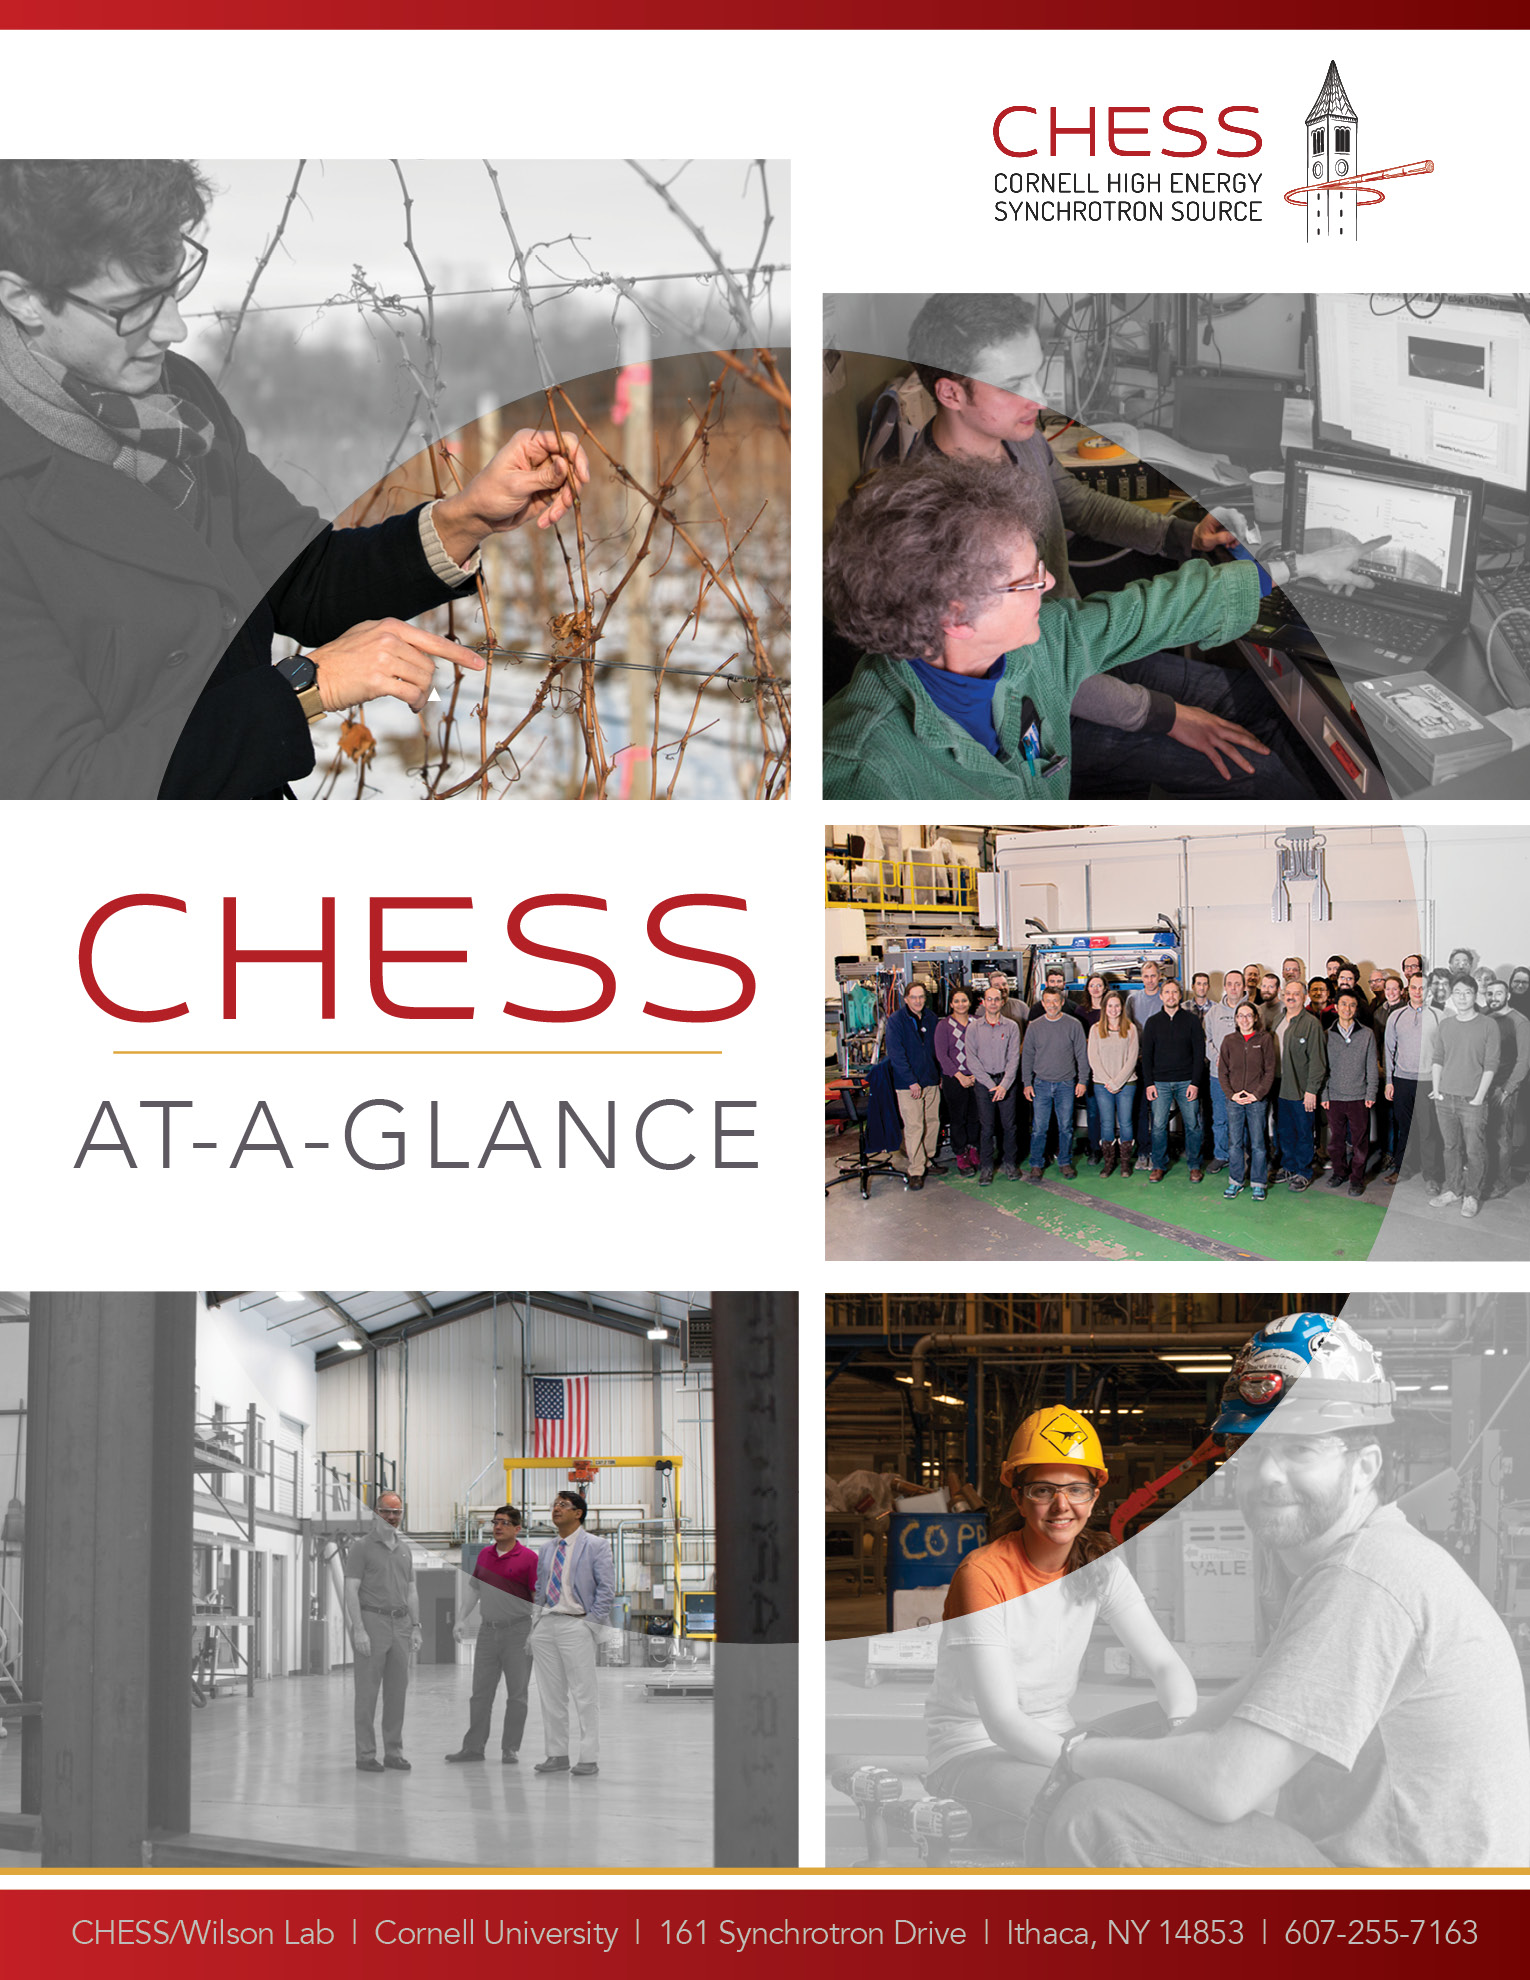 CHESS at a glance